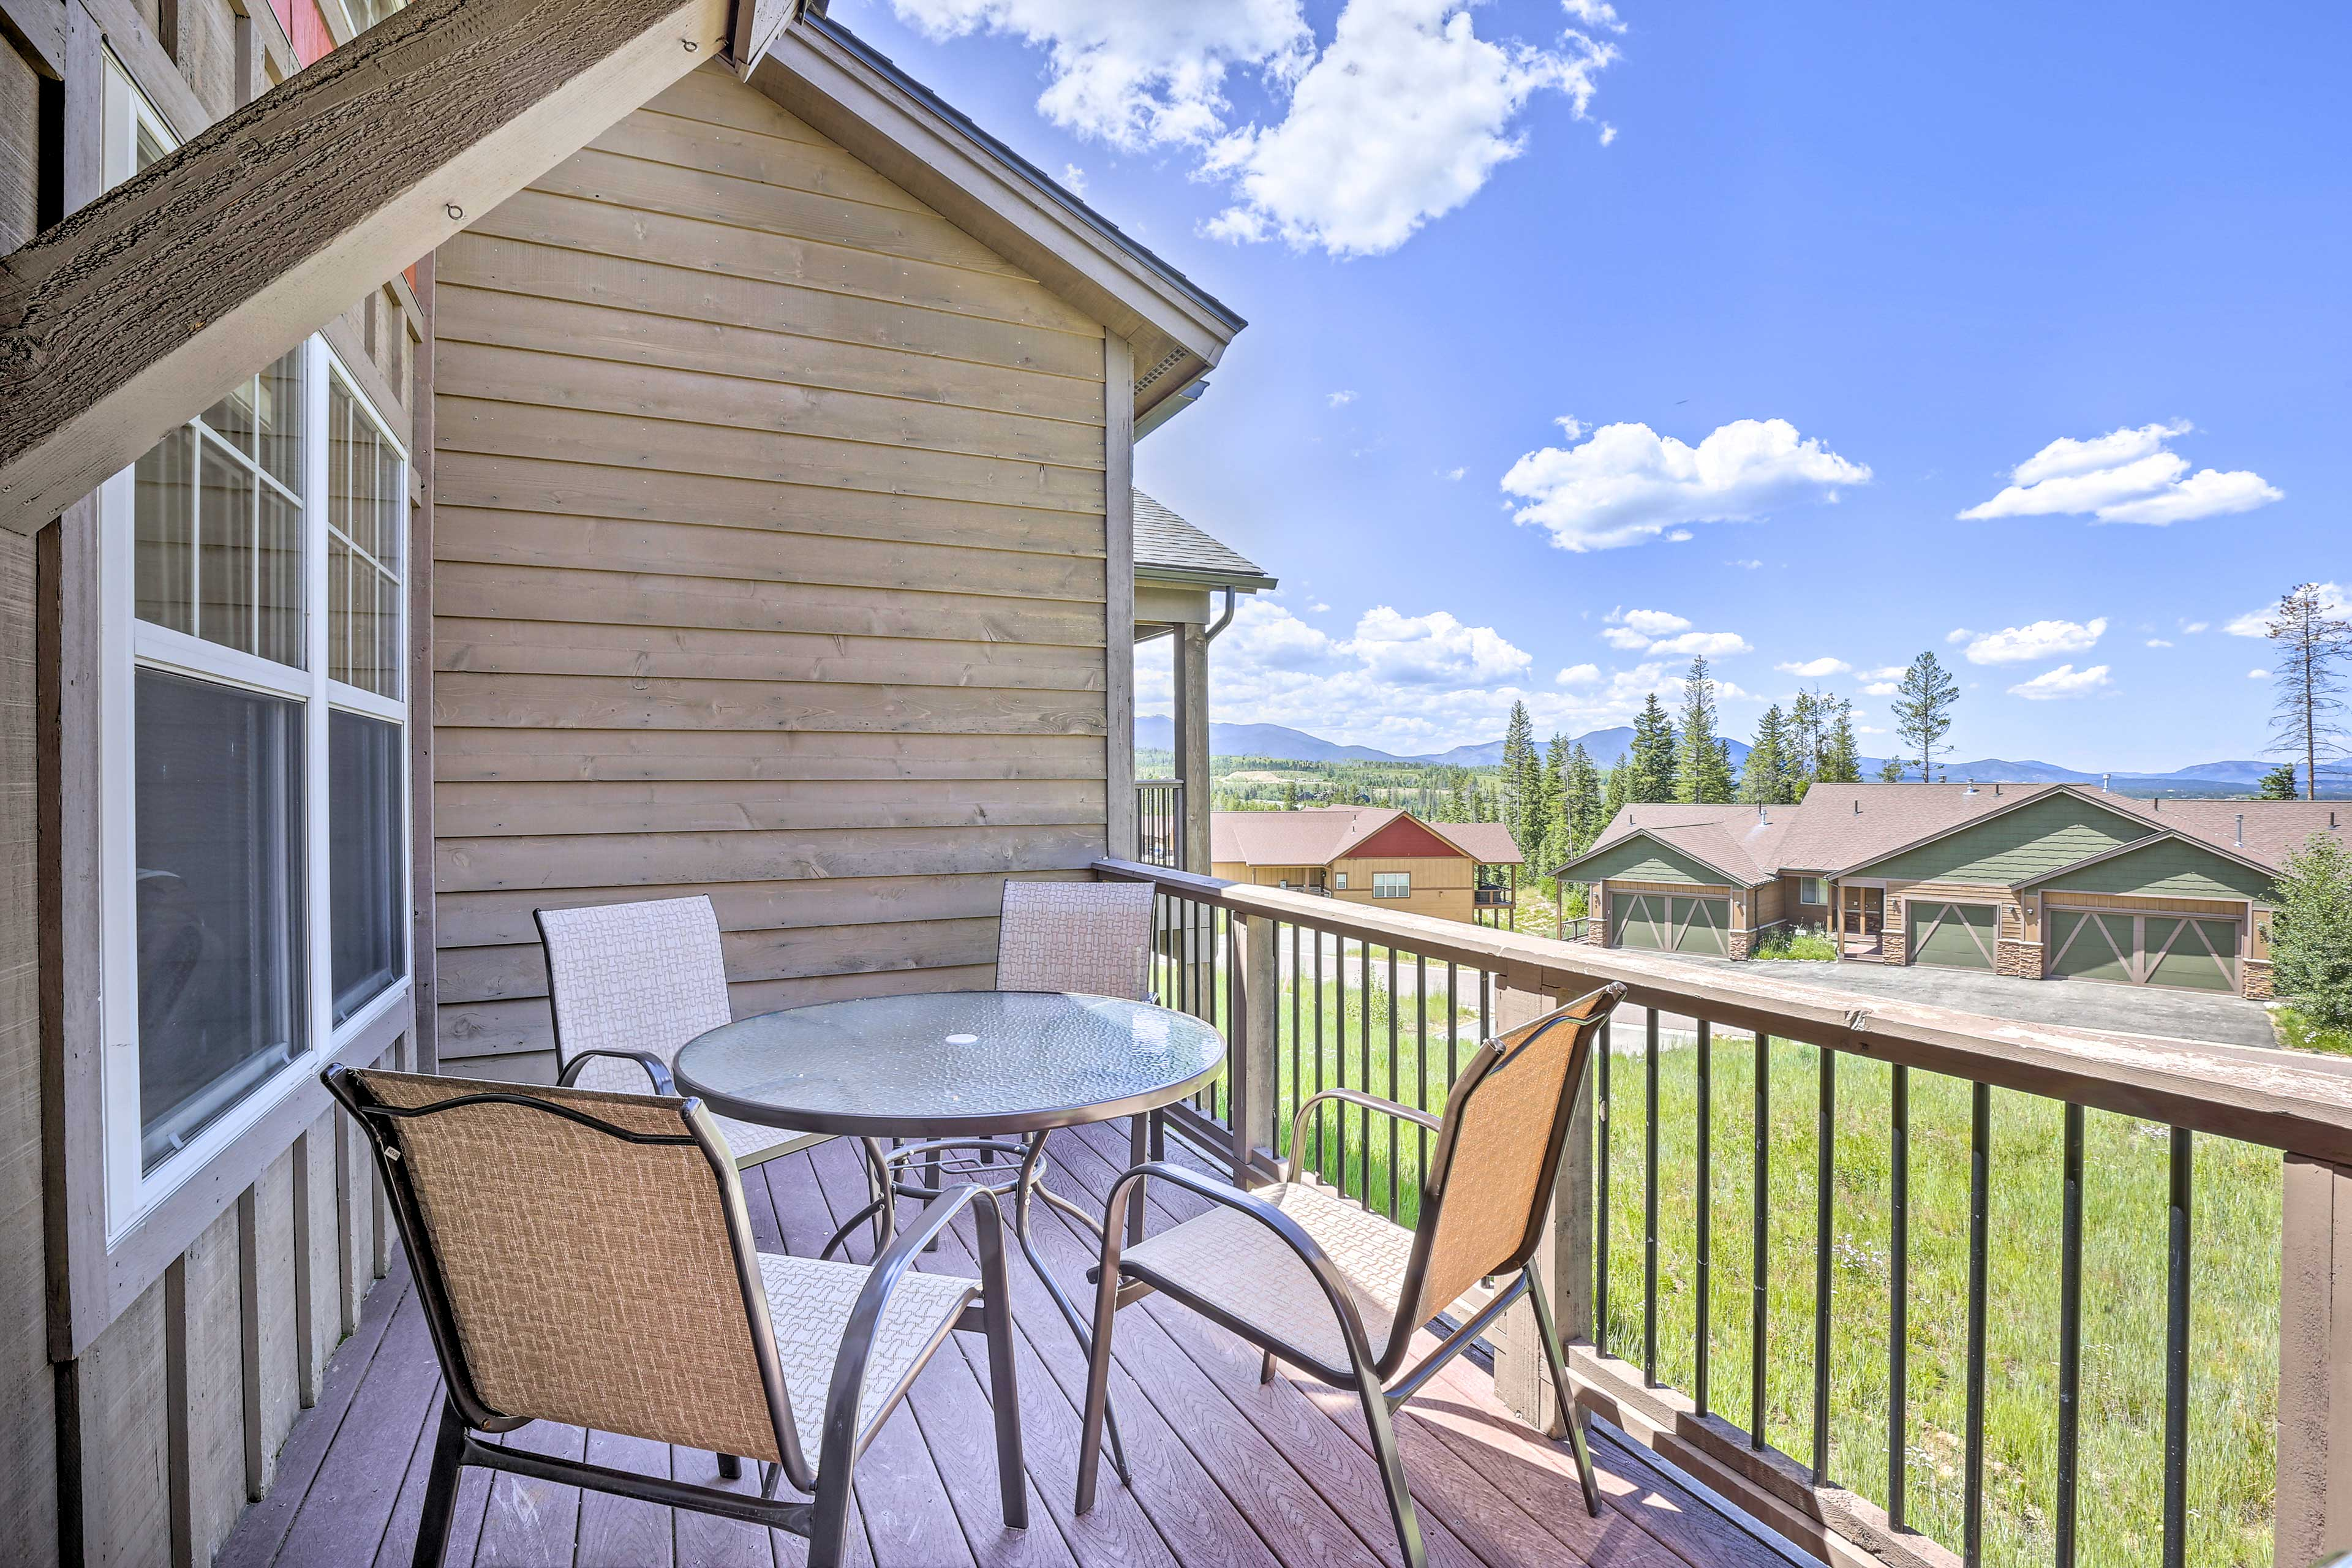 Take in beautiful vistas from this vacation rental's deck!